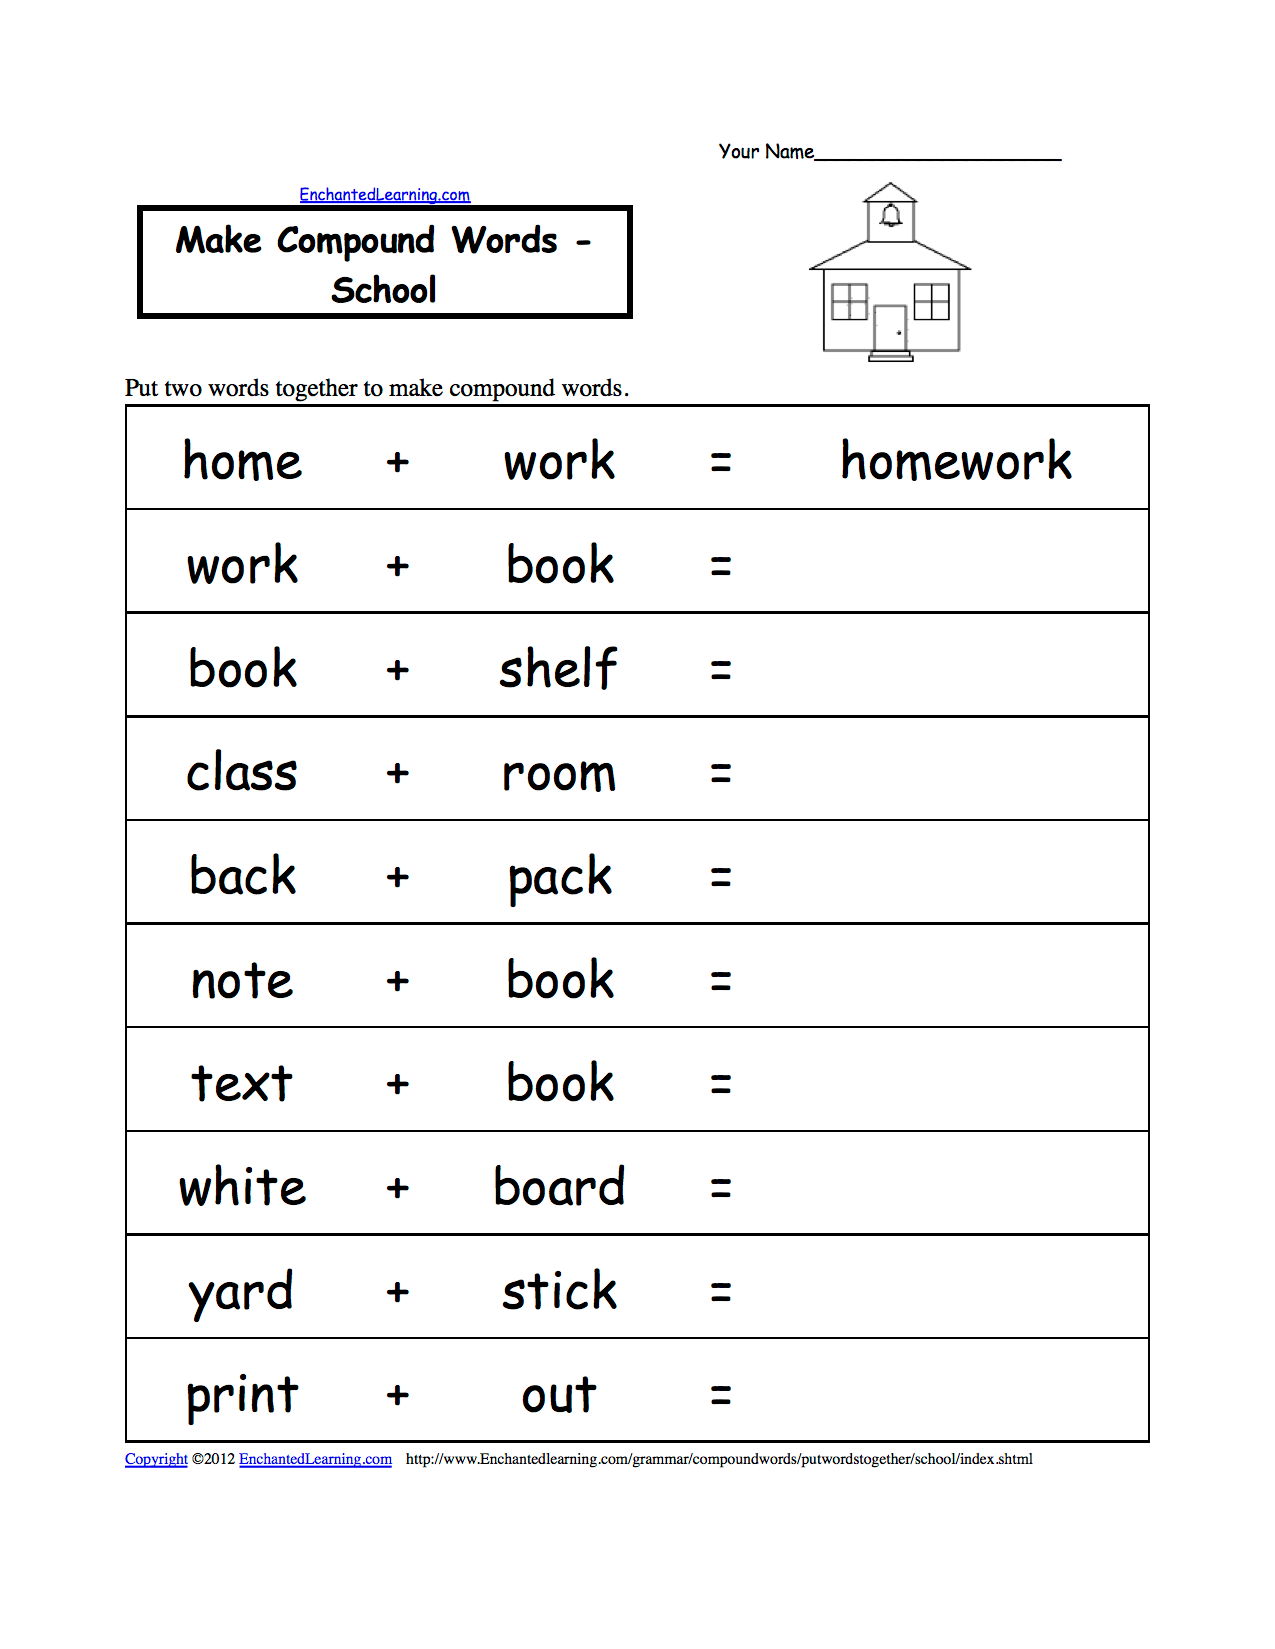 Spelling Worksheets School Theme Page At Enchantedlearning